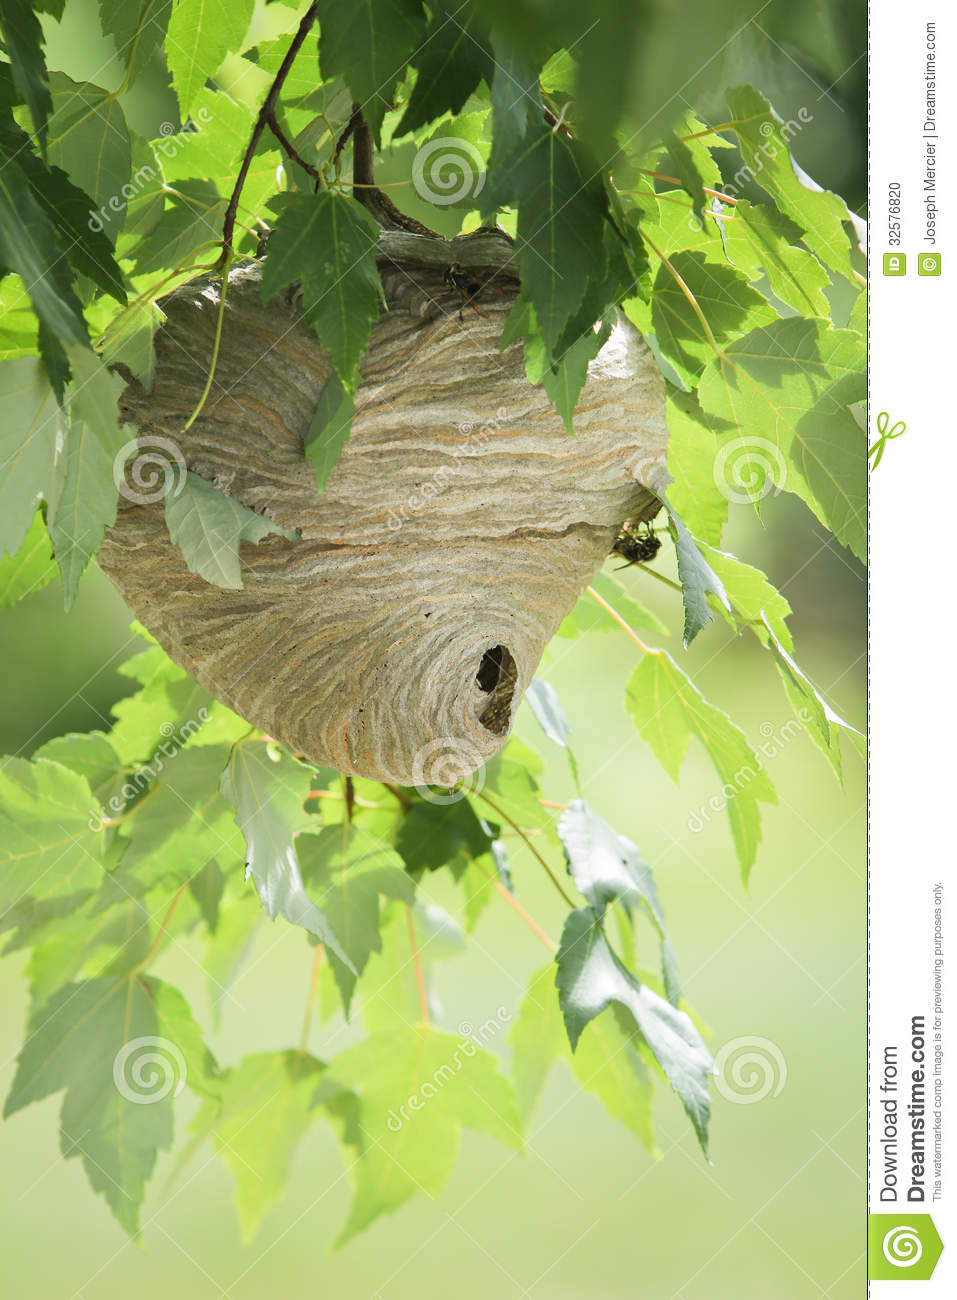 Wasp Nest In Tree Stock Photo - Image: 32576820